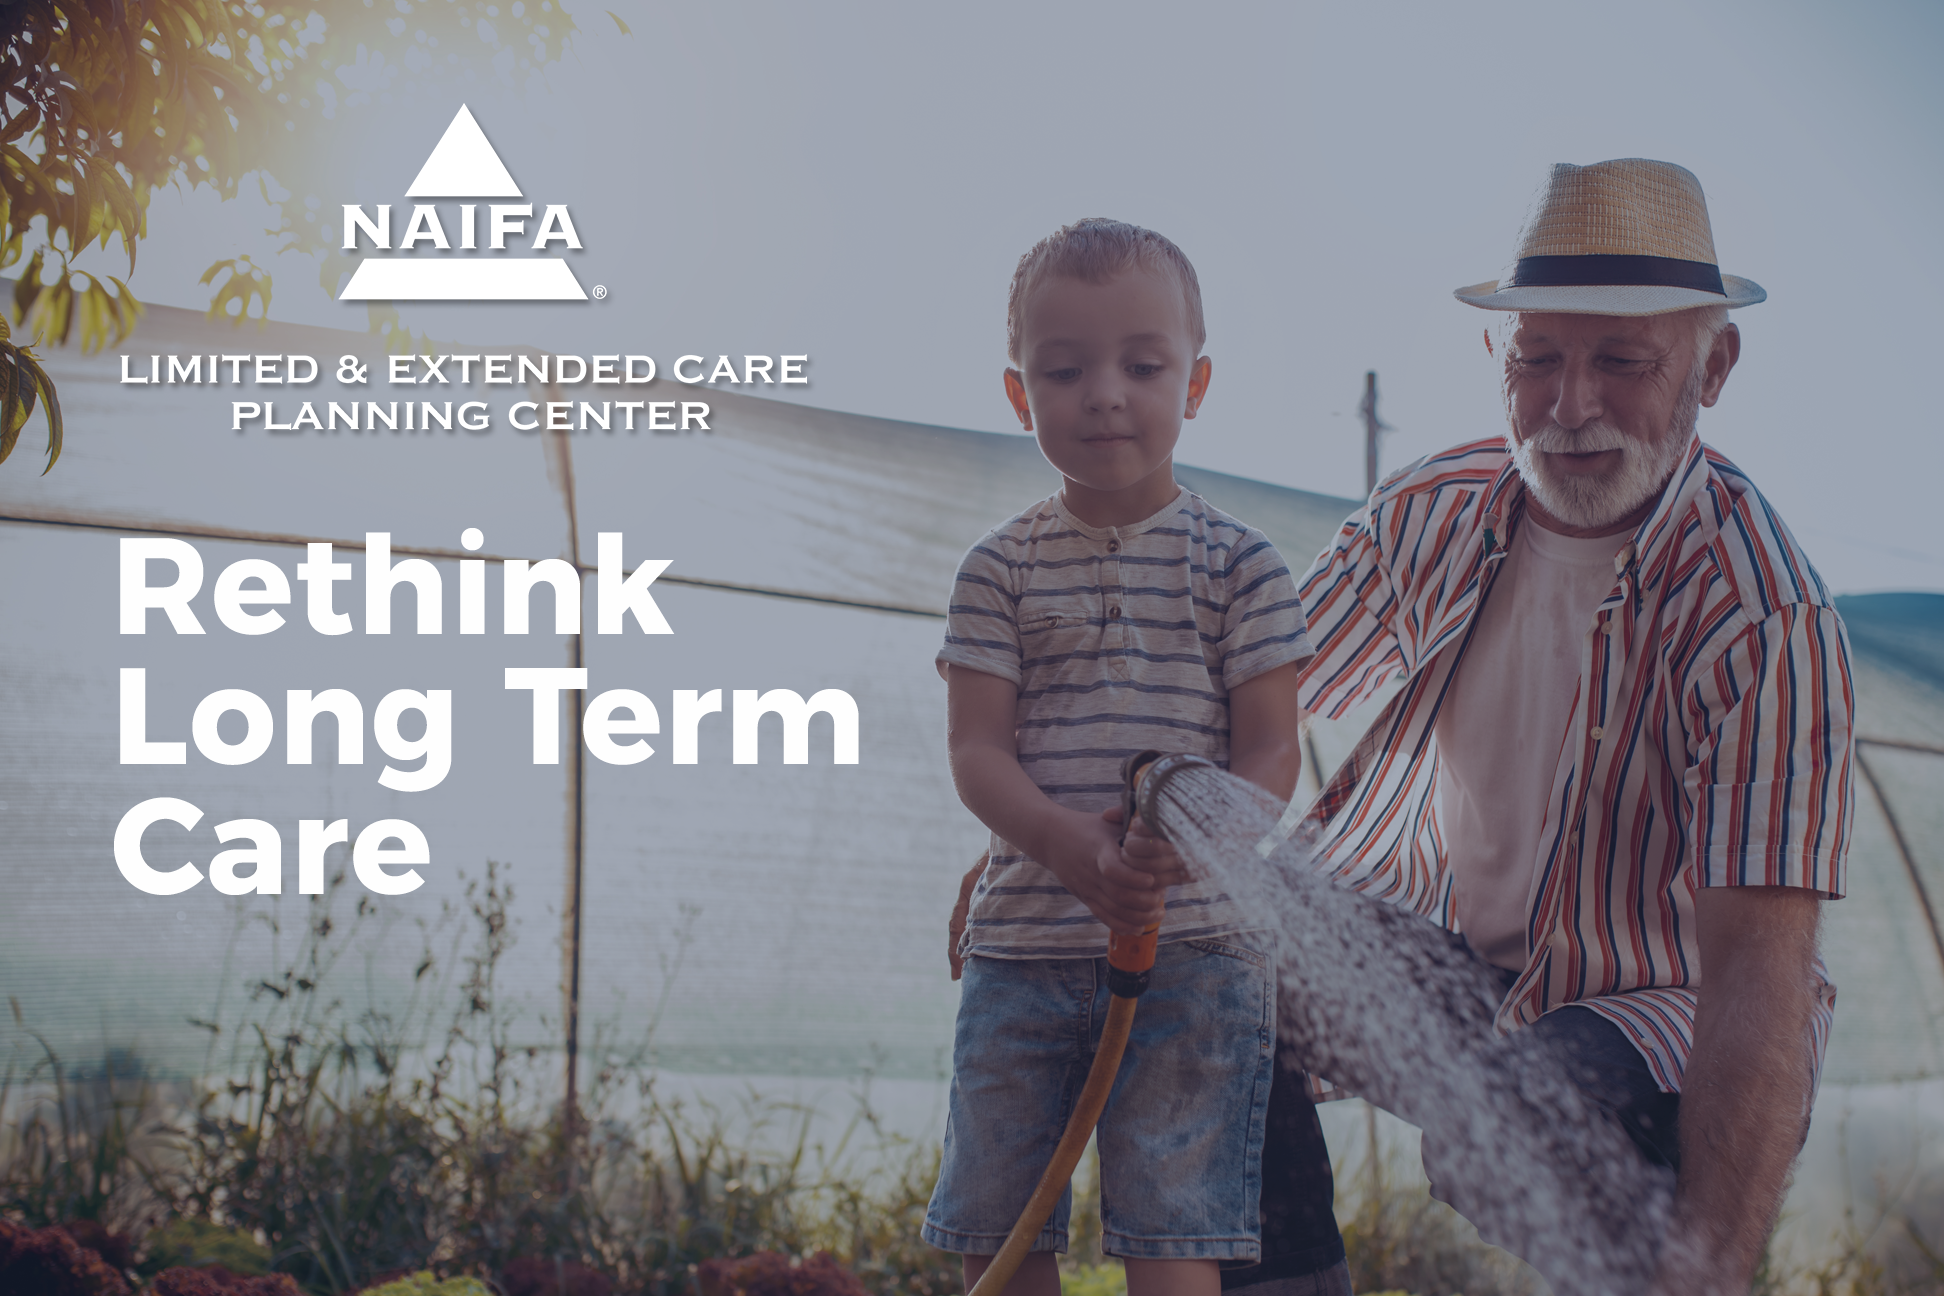 Rethink Long Term Care with NAIFA's Limited and Extended Care Center